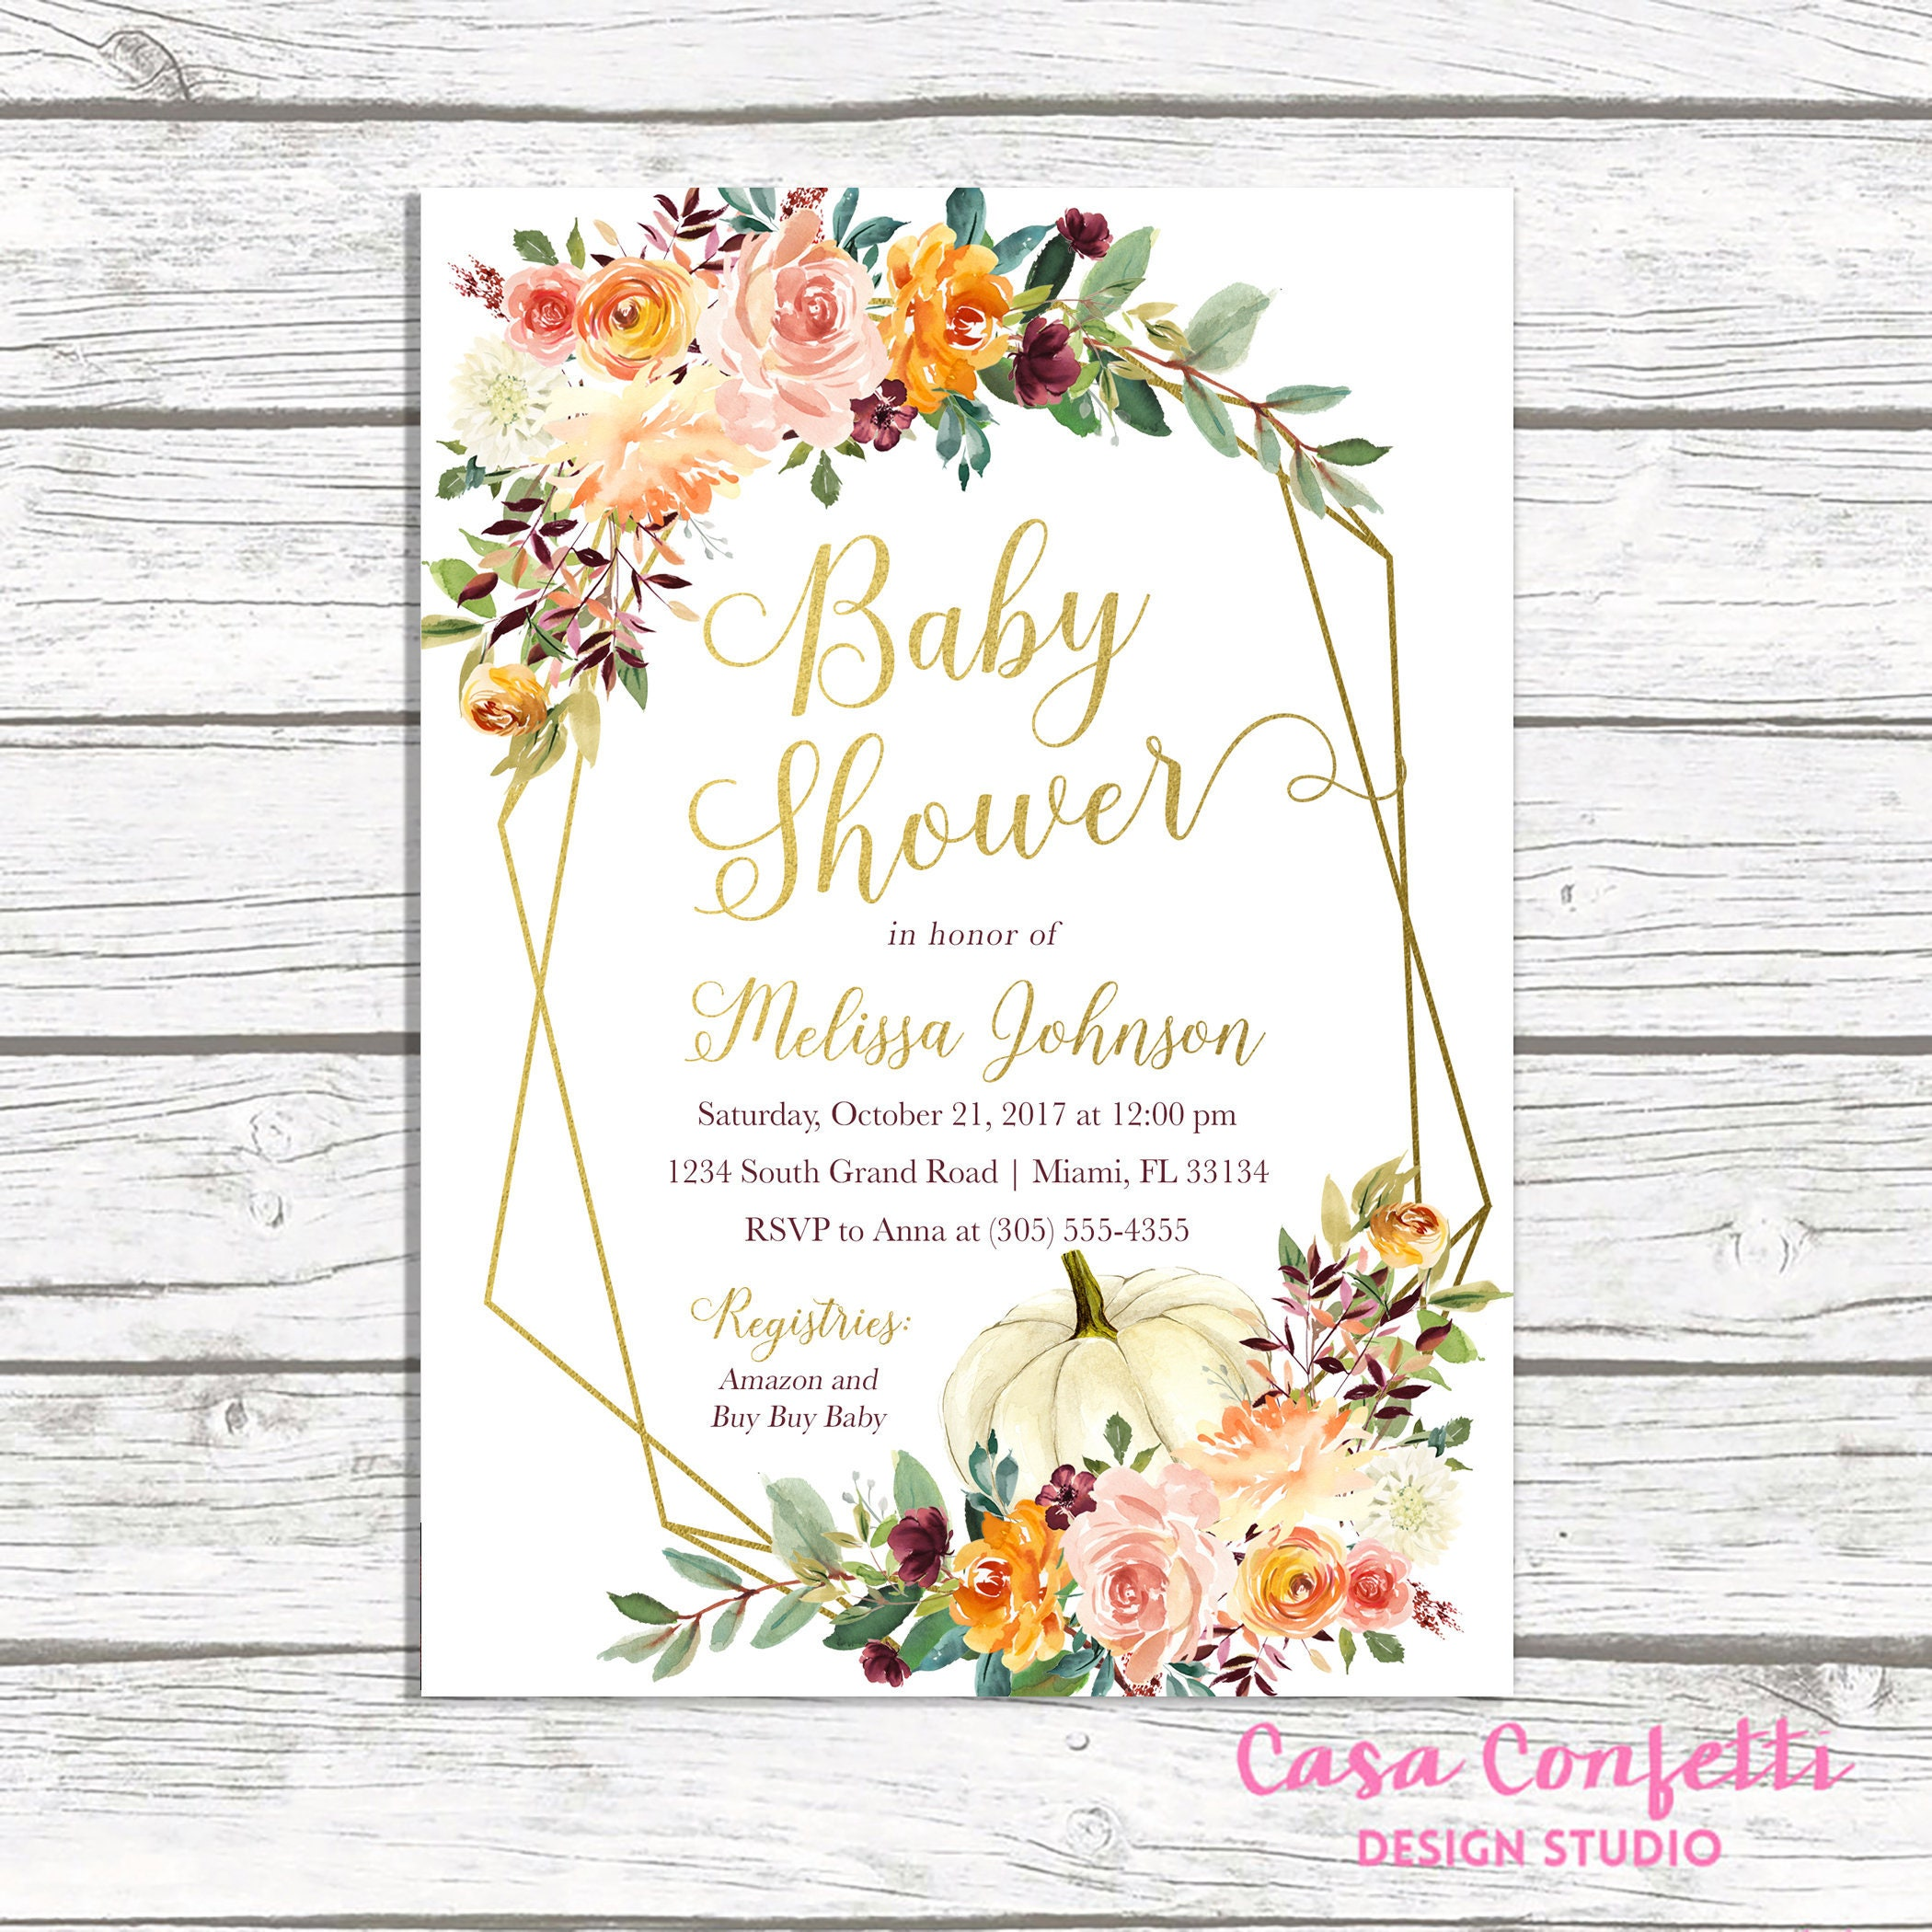 Pumpkin baby shower invitation fall baby shower invitation little pumpkin baby shower invitation fall baby shower invitation little pumpkin on the way invite rustic gender neutral baby shower invitation filmwisefo